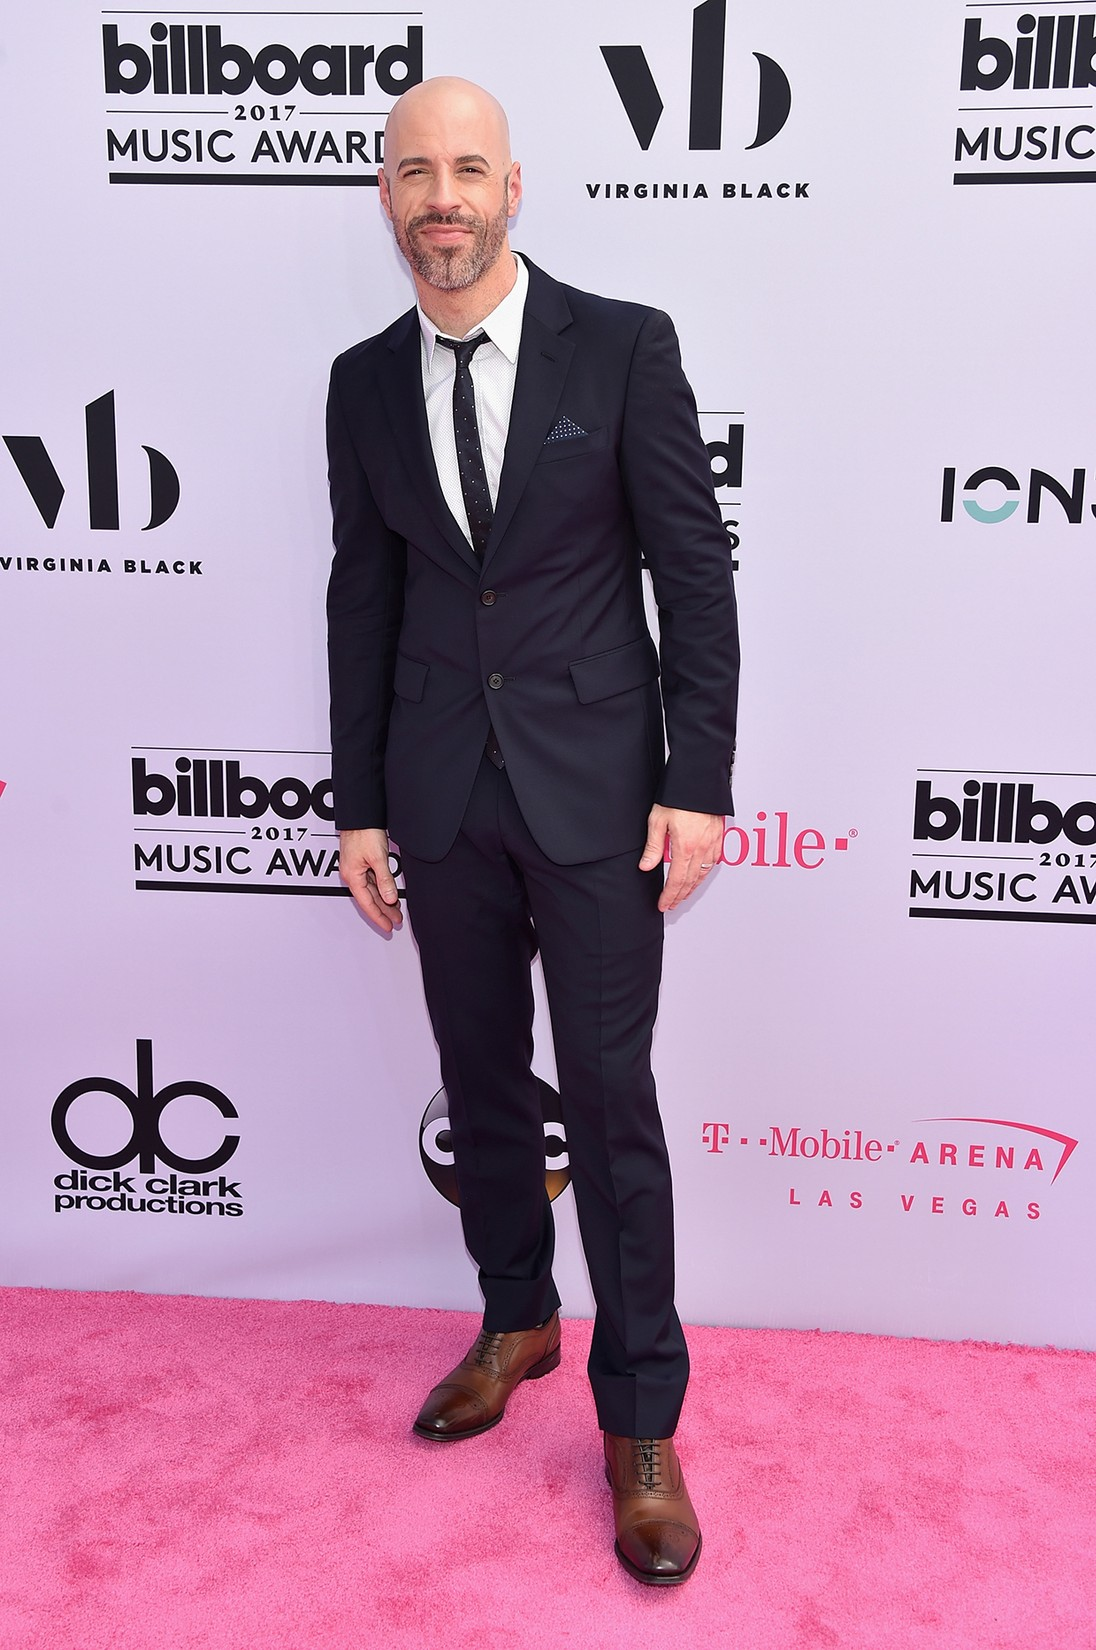 Chris Daughtry attends the 2017 Billboard Music Awards at T-Mobile Arena on May 21, 2017 in Las Vegas.